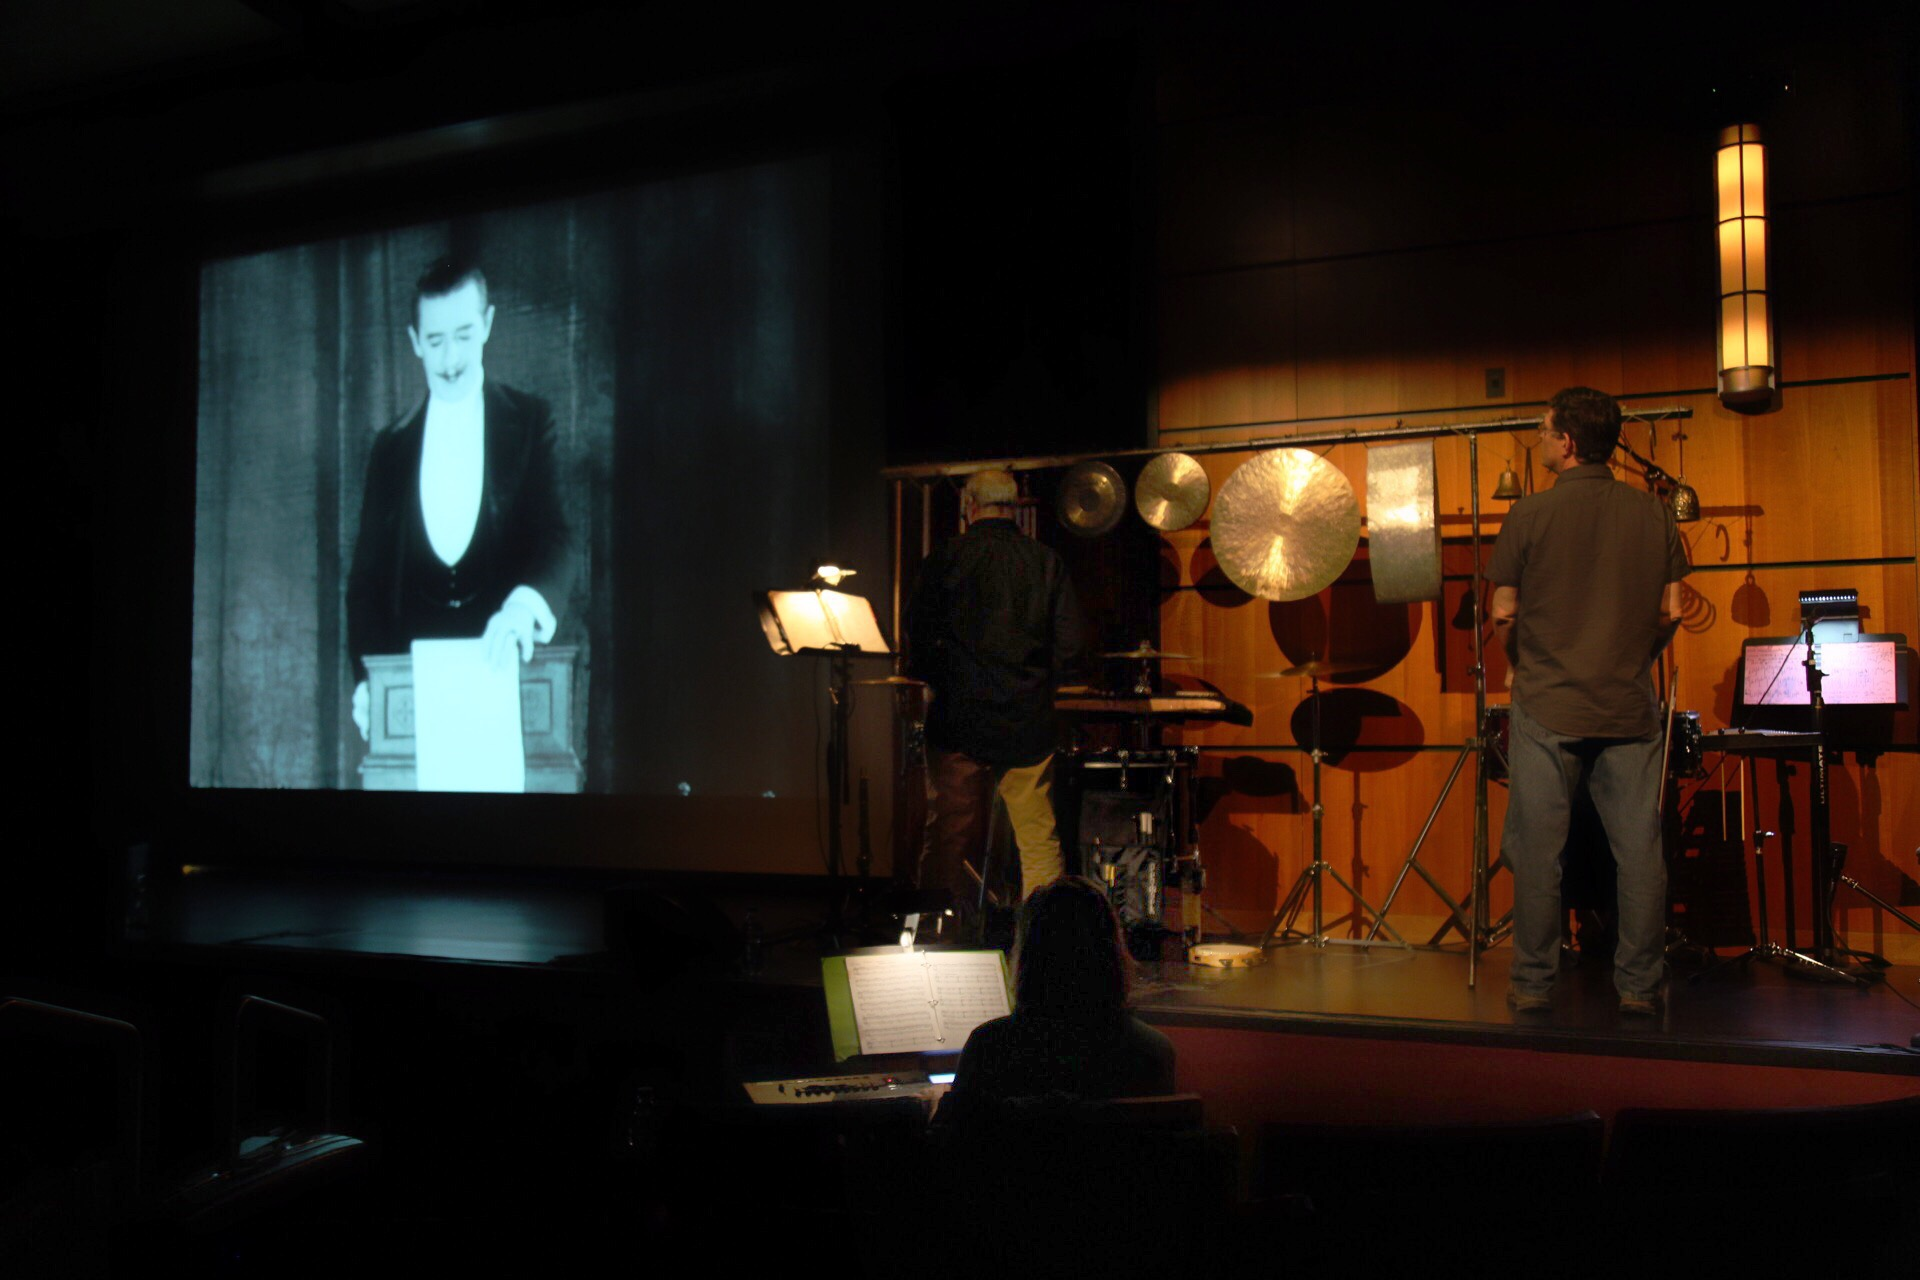 The Alloy Orchestra uses improvised materials such as saws and sheet metal to create soundscapes for silent films.